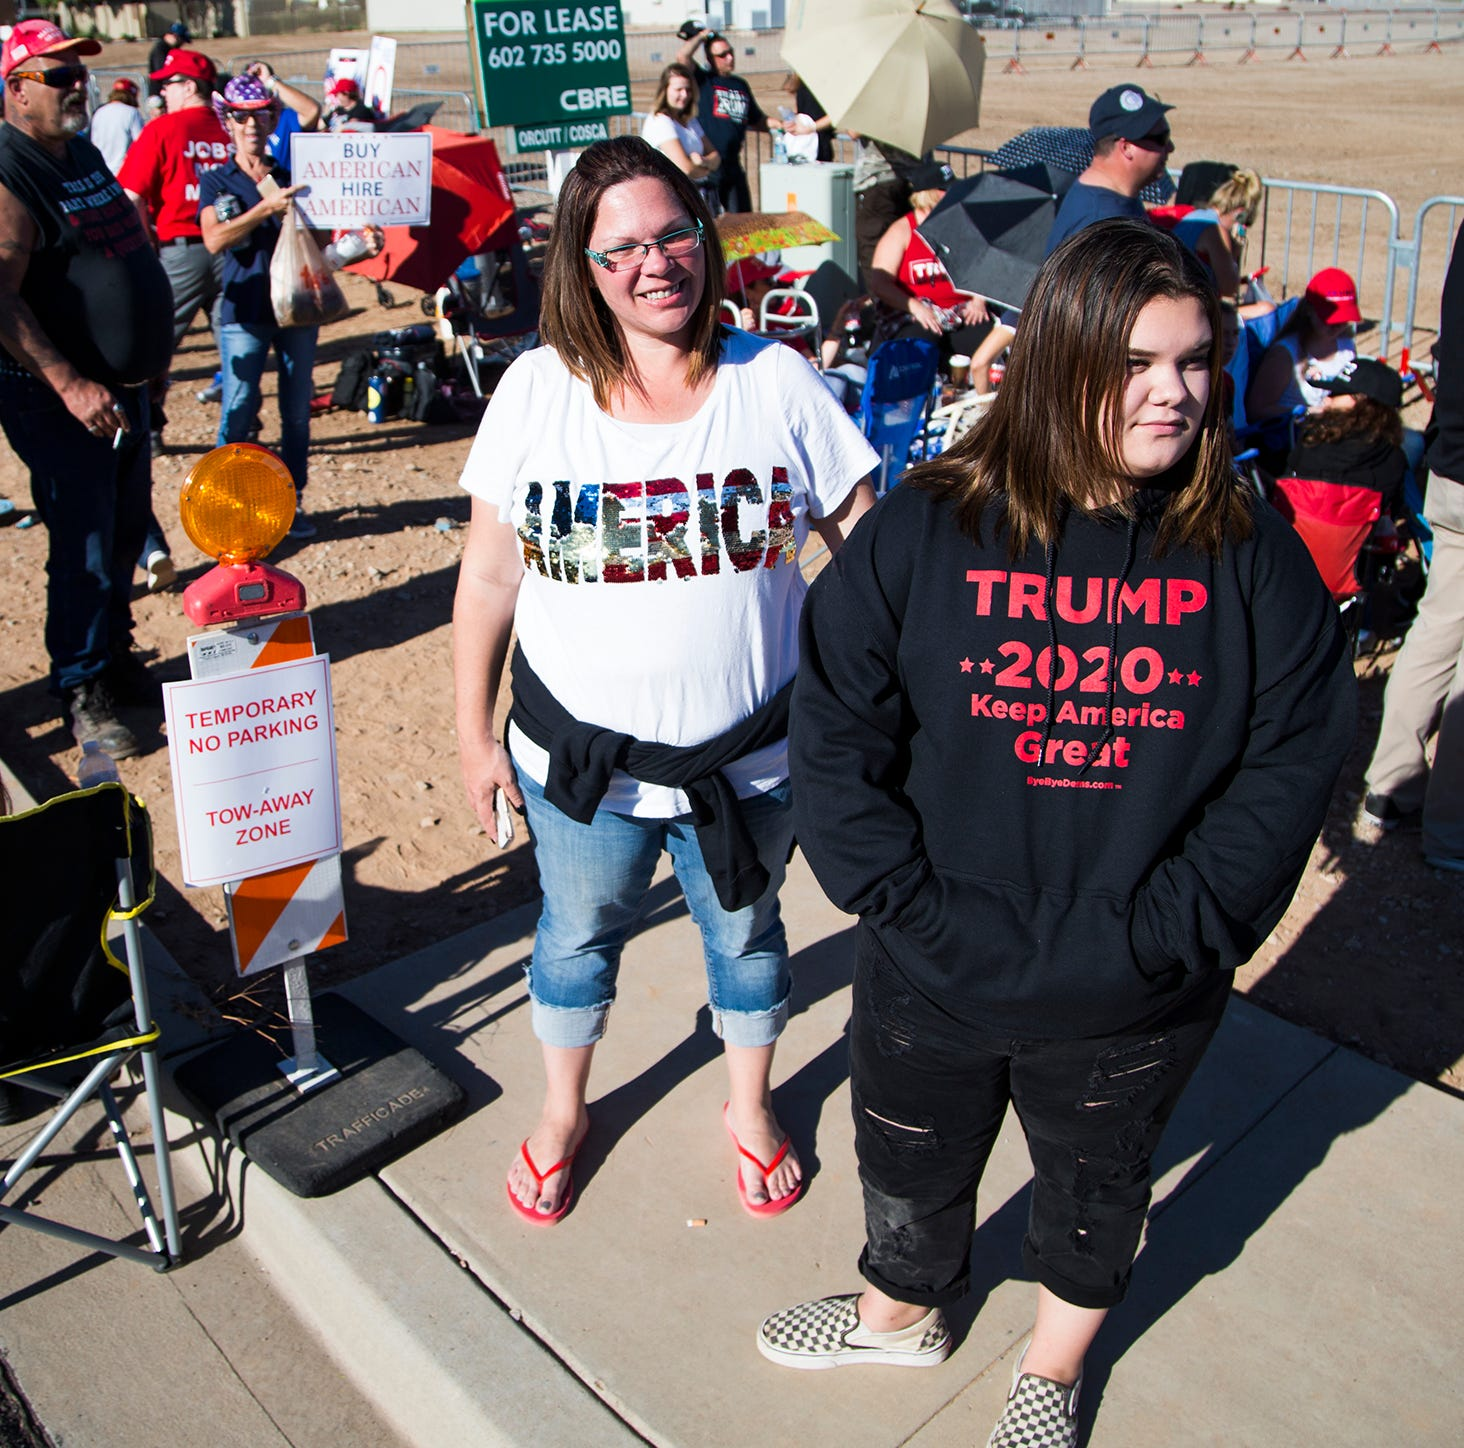 Trump in Arizona: Crowd of supporters let into Mesa venue